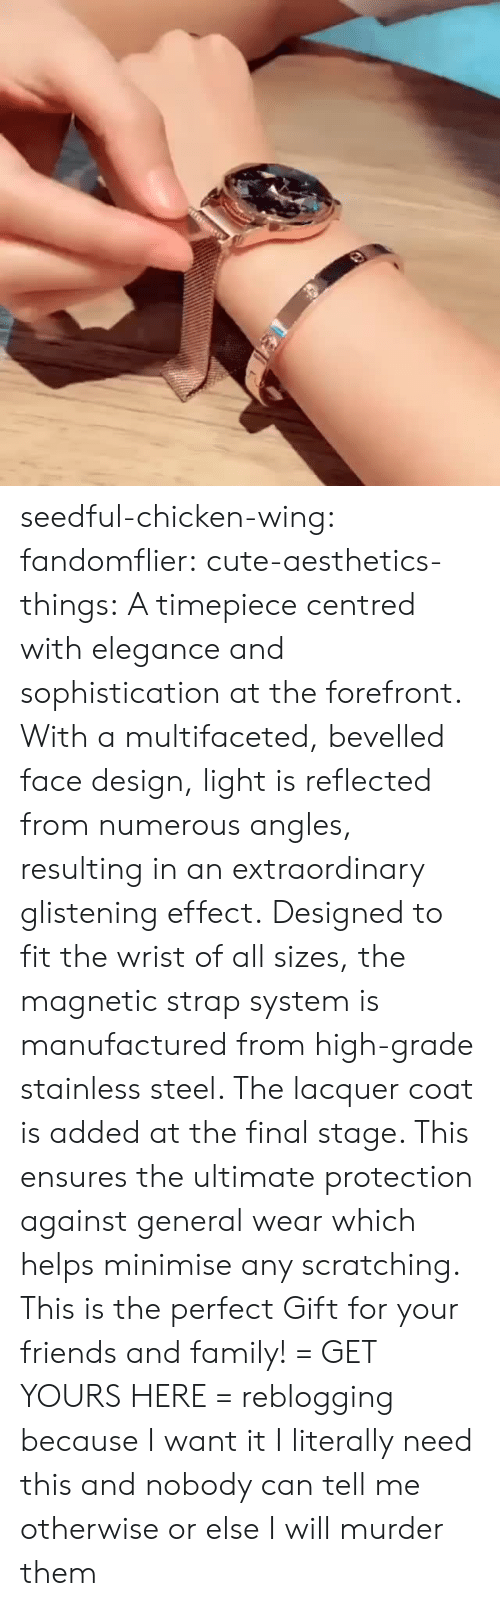 Cute, Family, and Friends: seedful-chicken-wing:  fandomflier: cute-aesthetics-things:   A timepiece centred with elegance and sophistication at the forefront. With a multifaceted, bevelled face design, light is reflected from numerous angles, resulting in an extraordinary glistening effect. Designed to fit the wrist of all sizes, the magnetic strap system is manufactured from high-grade stainless steel. The lacquer coat is added at the final stage. This ensures the ultimate protection against general wear which helps minimise any scratching. This is the perfect Gift for your friends and family! = GET YOURS HERE =   reblogging because I want it  I literally need this and nobody can tell me otherwise or else I will murder them